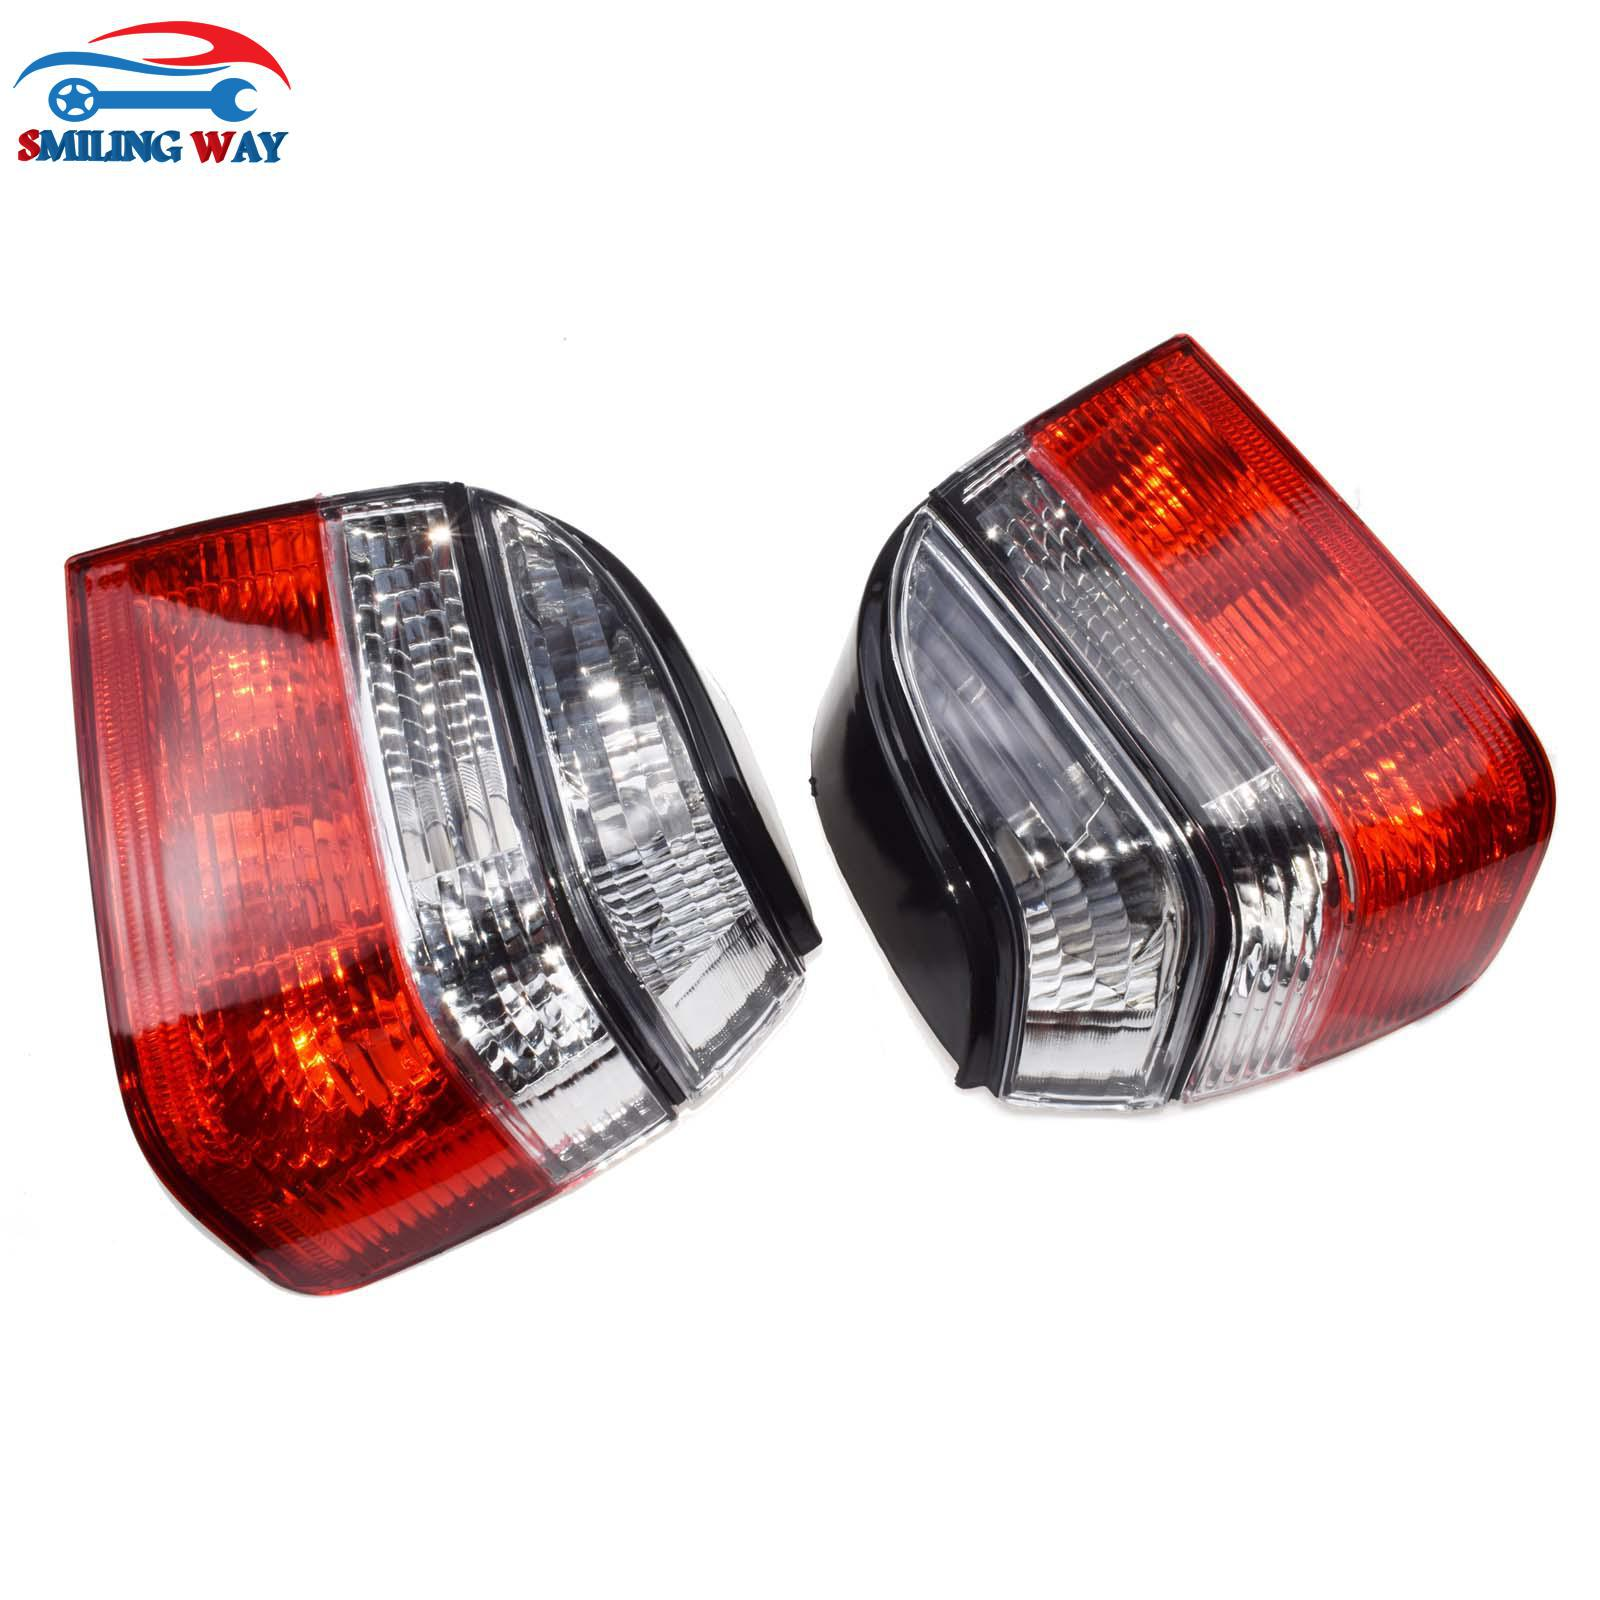 SMILING WAY Tail Brake Light Housing Cover Lamp Left Right Fit VW Golf III Mk3 1993